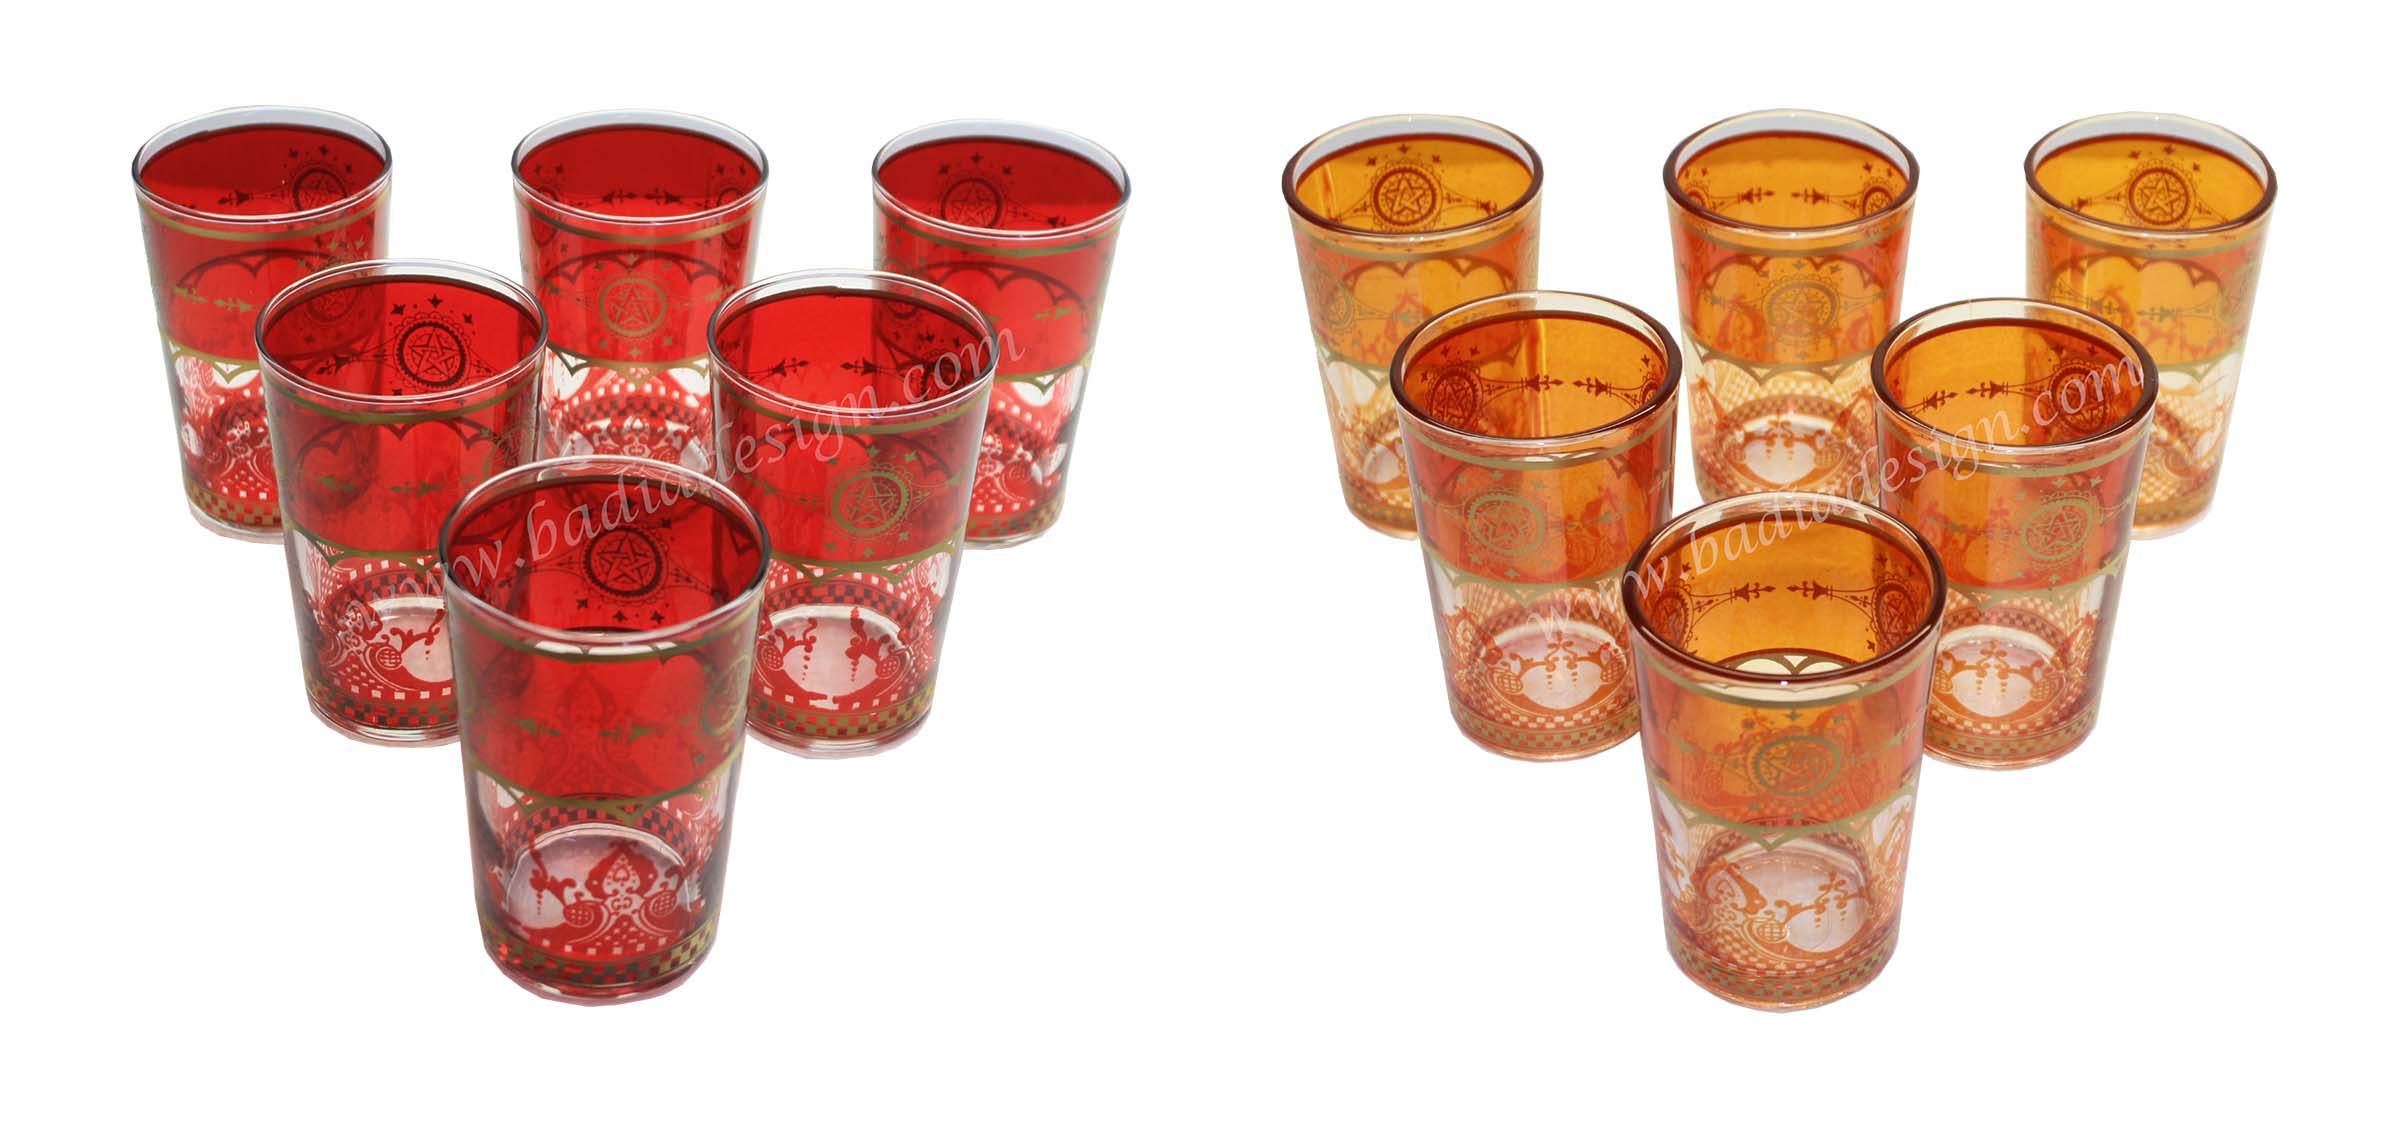 moroccan-tea-glasses-new-york-tg019.jpg